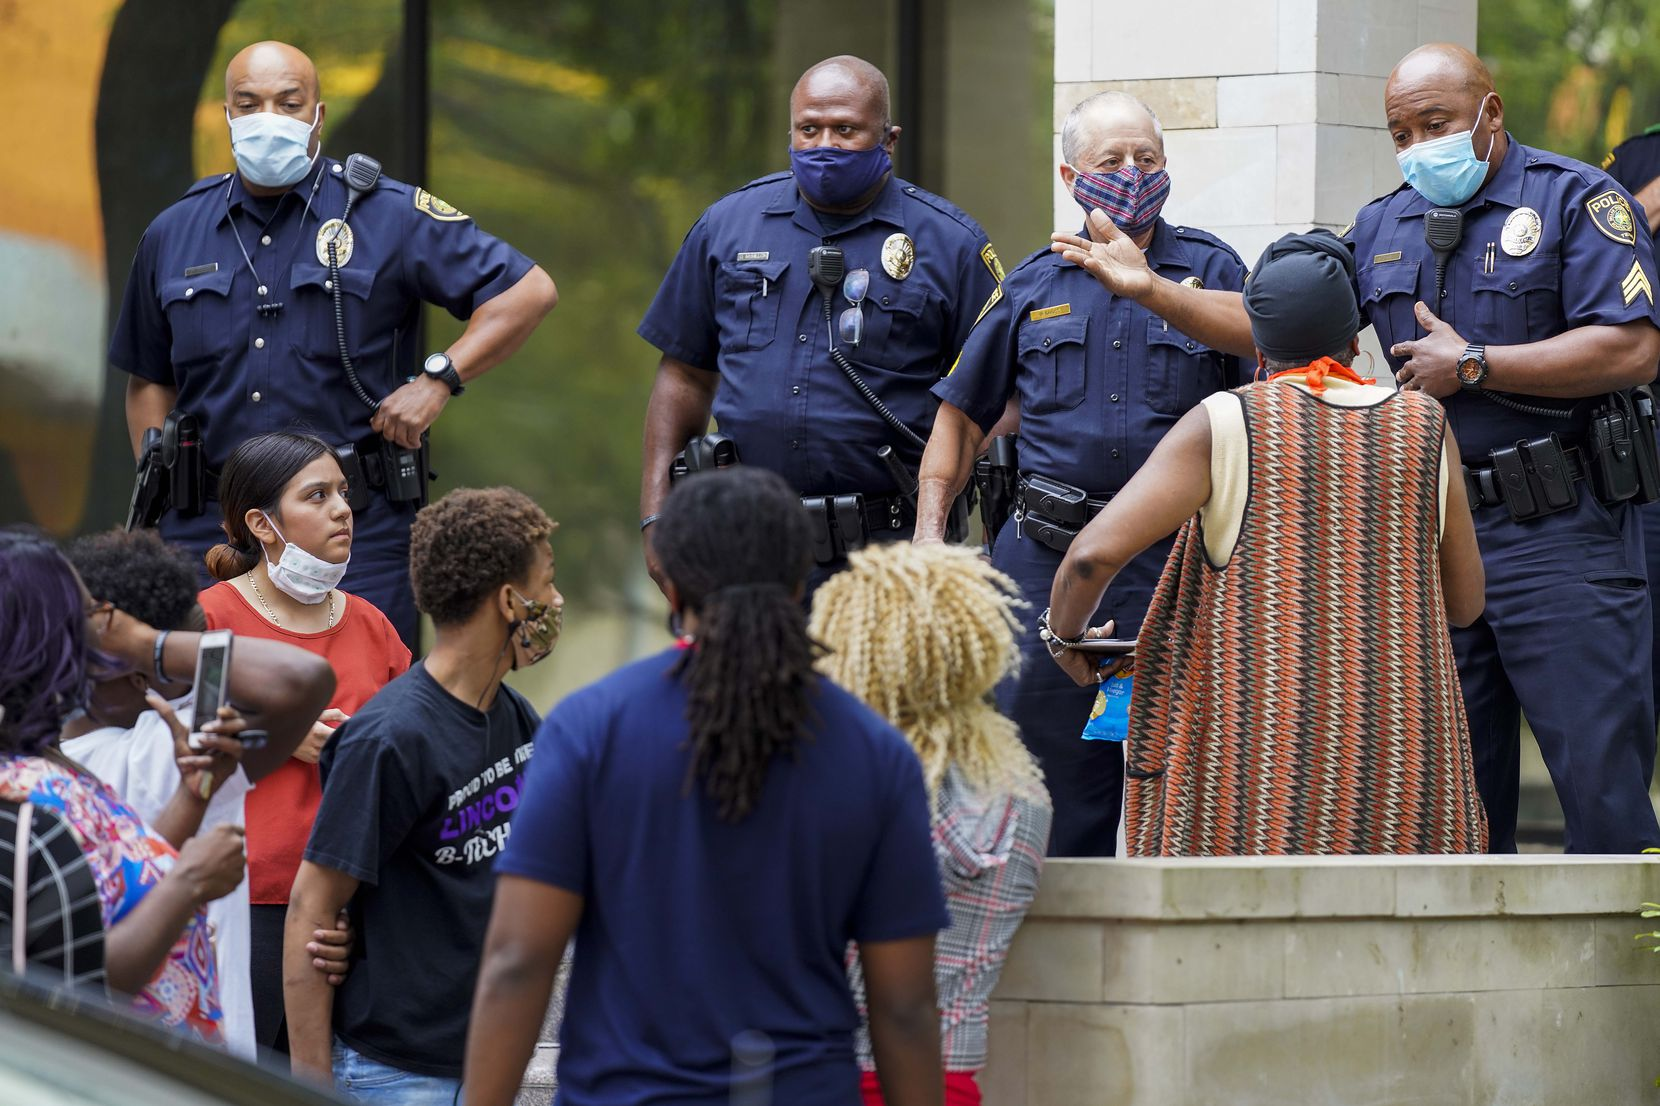 A Dallas ISD police officer asked  protesters to leave after activist Carlos Quintanilla tried to lead students, parents and community organizers into the DISD administration building Tuesday.